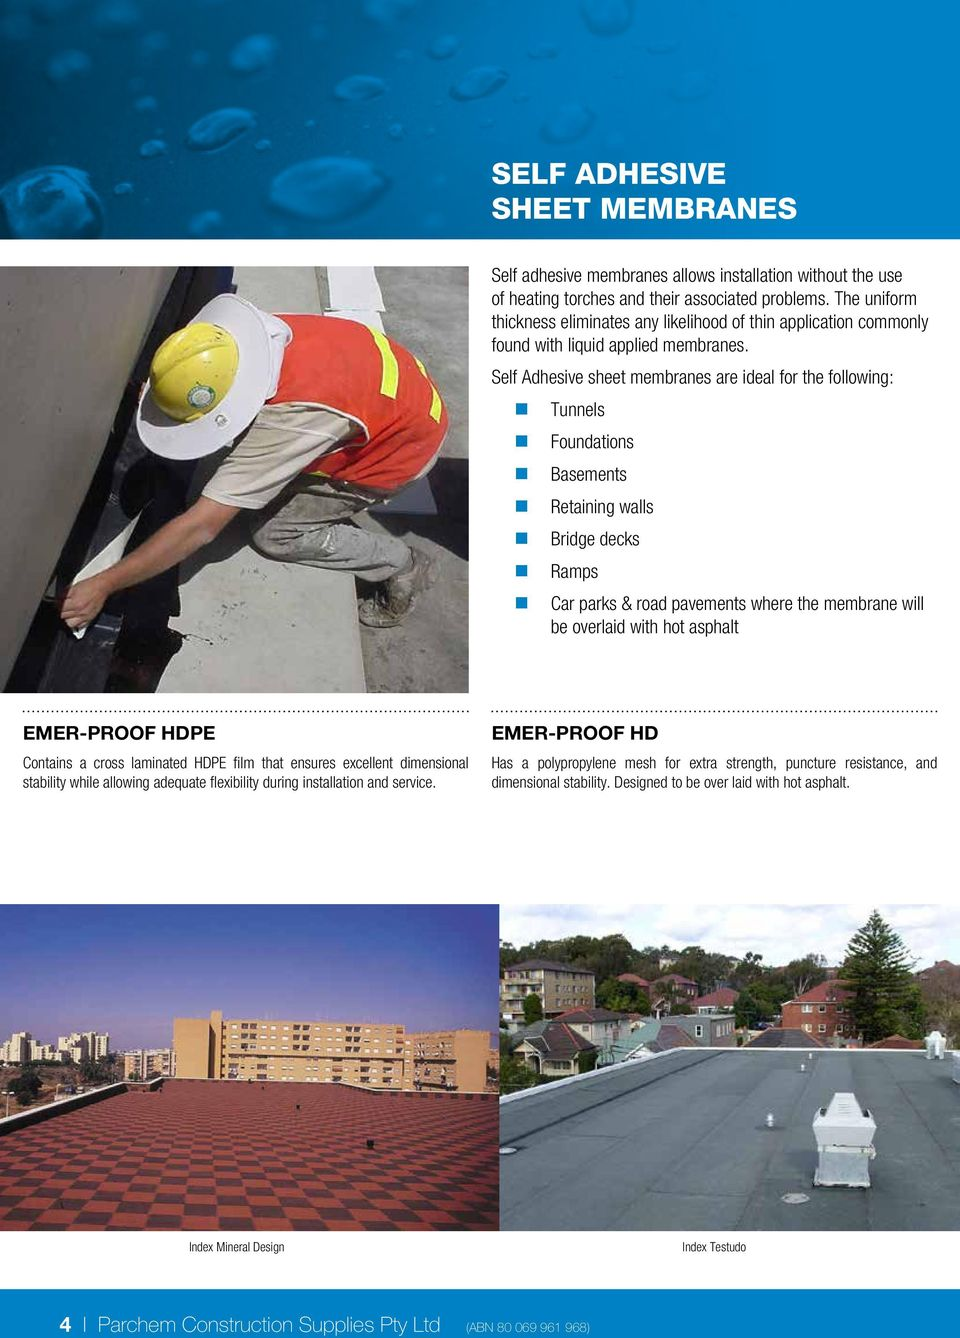 Self Adhesive sheet membranes are ideal for the following: Tunnels Foundations Basements Retaining walls Bridge decks Ramps Car parks & road pavements where the membrane will be overlaid with hot